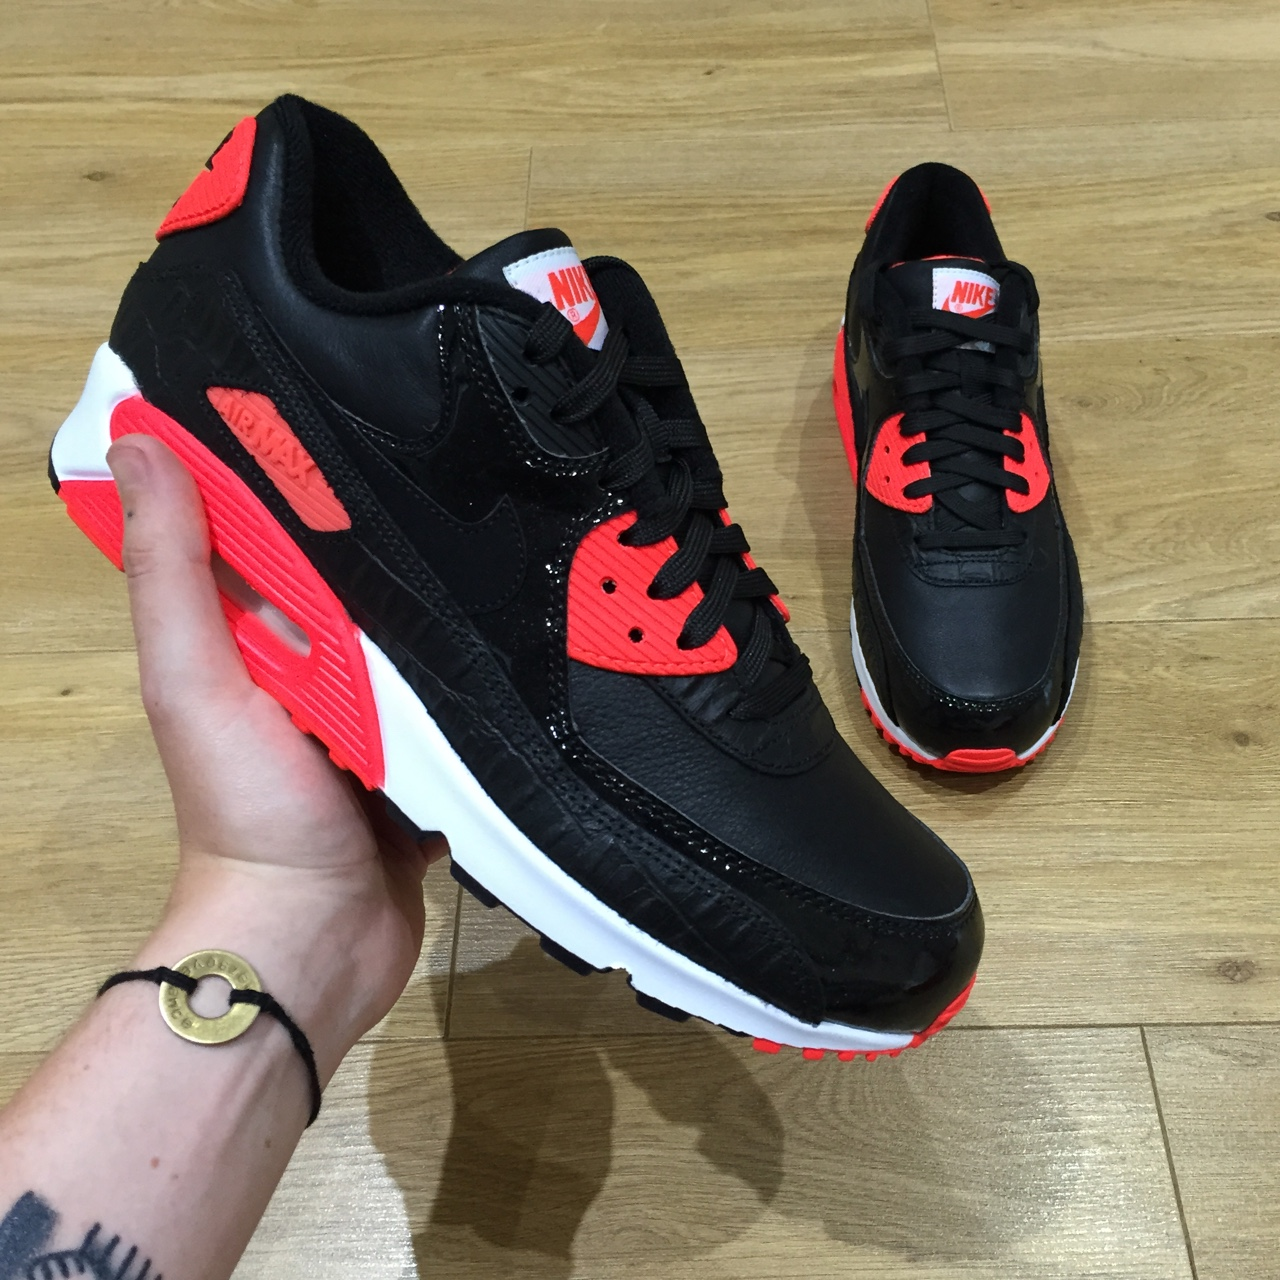 the best attitude 65a9c a4b8b  conorallen. 4 years ago. Crawley, West Sussex, UK. Nike Air Max 90  Infrared Croc ...